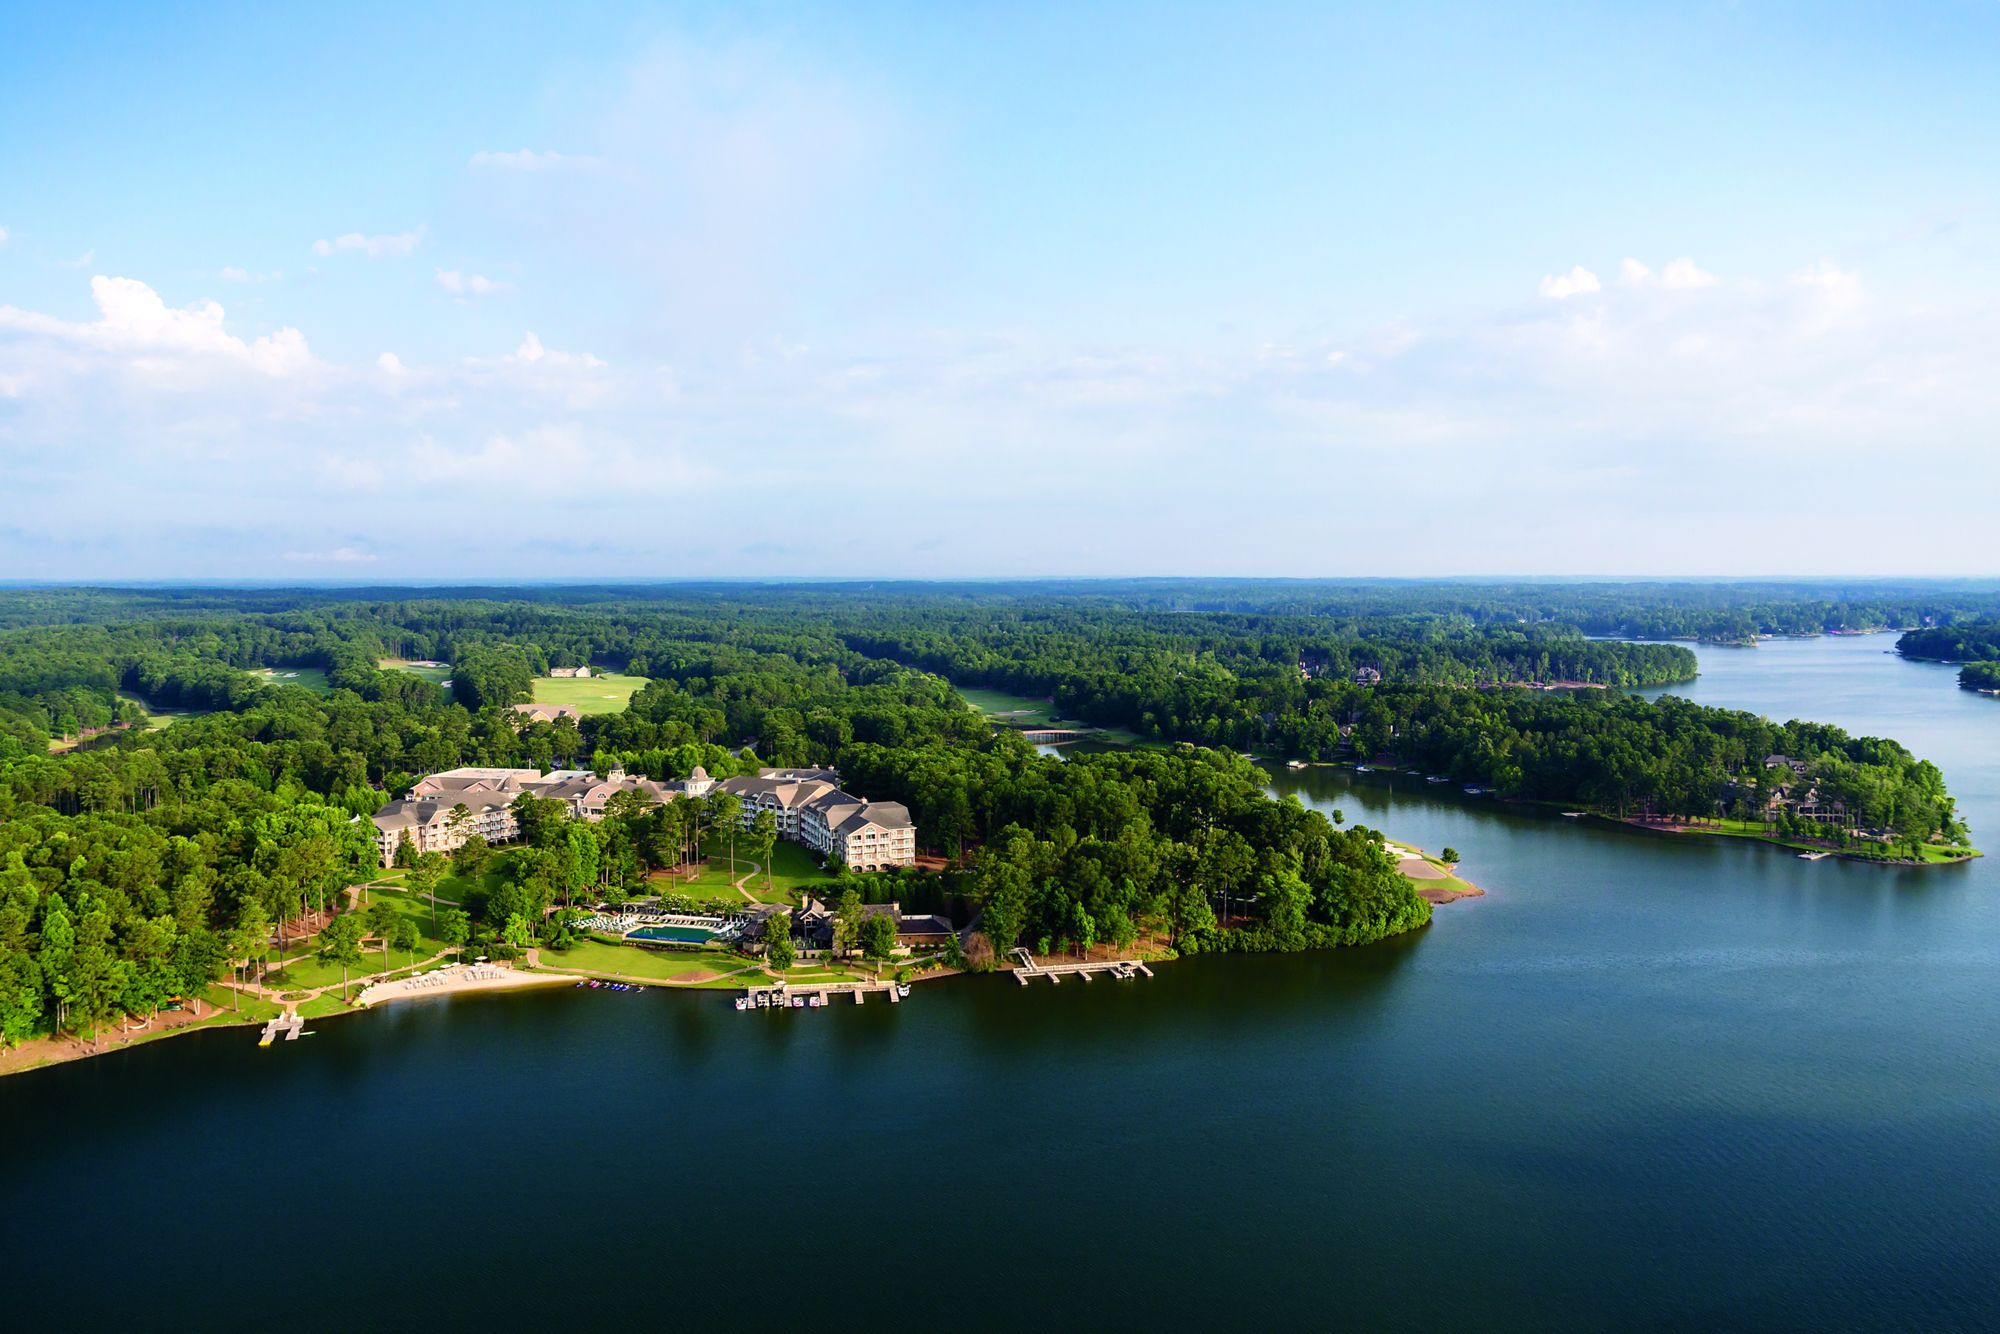 Aerial view of a building complex facing a large lake and